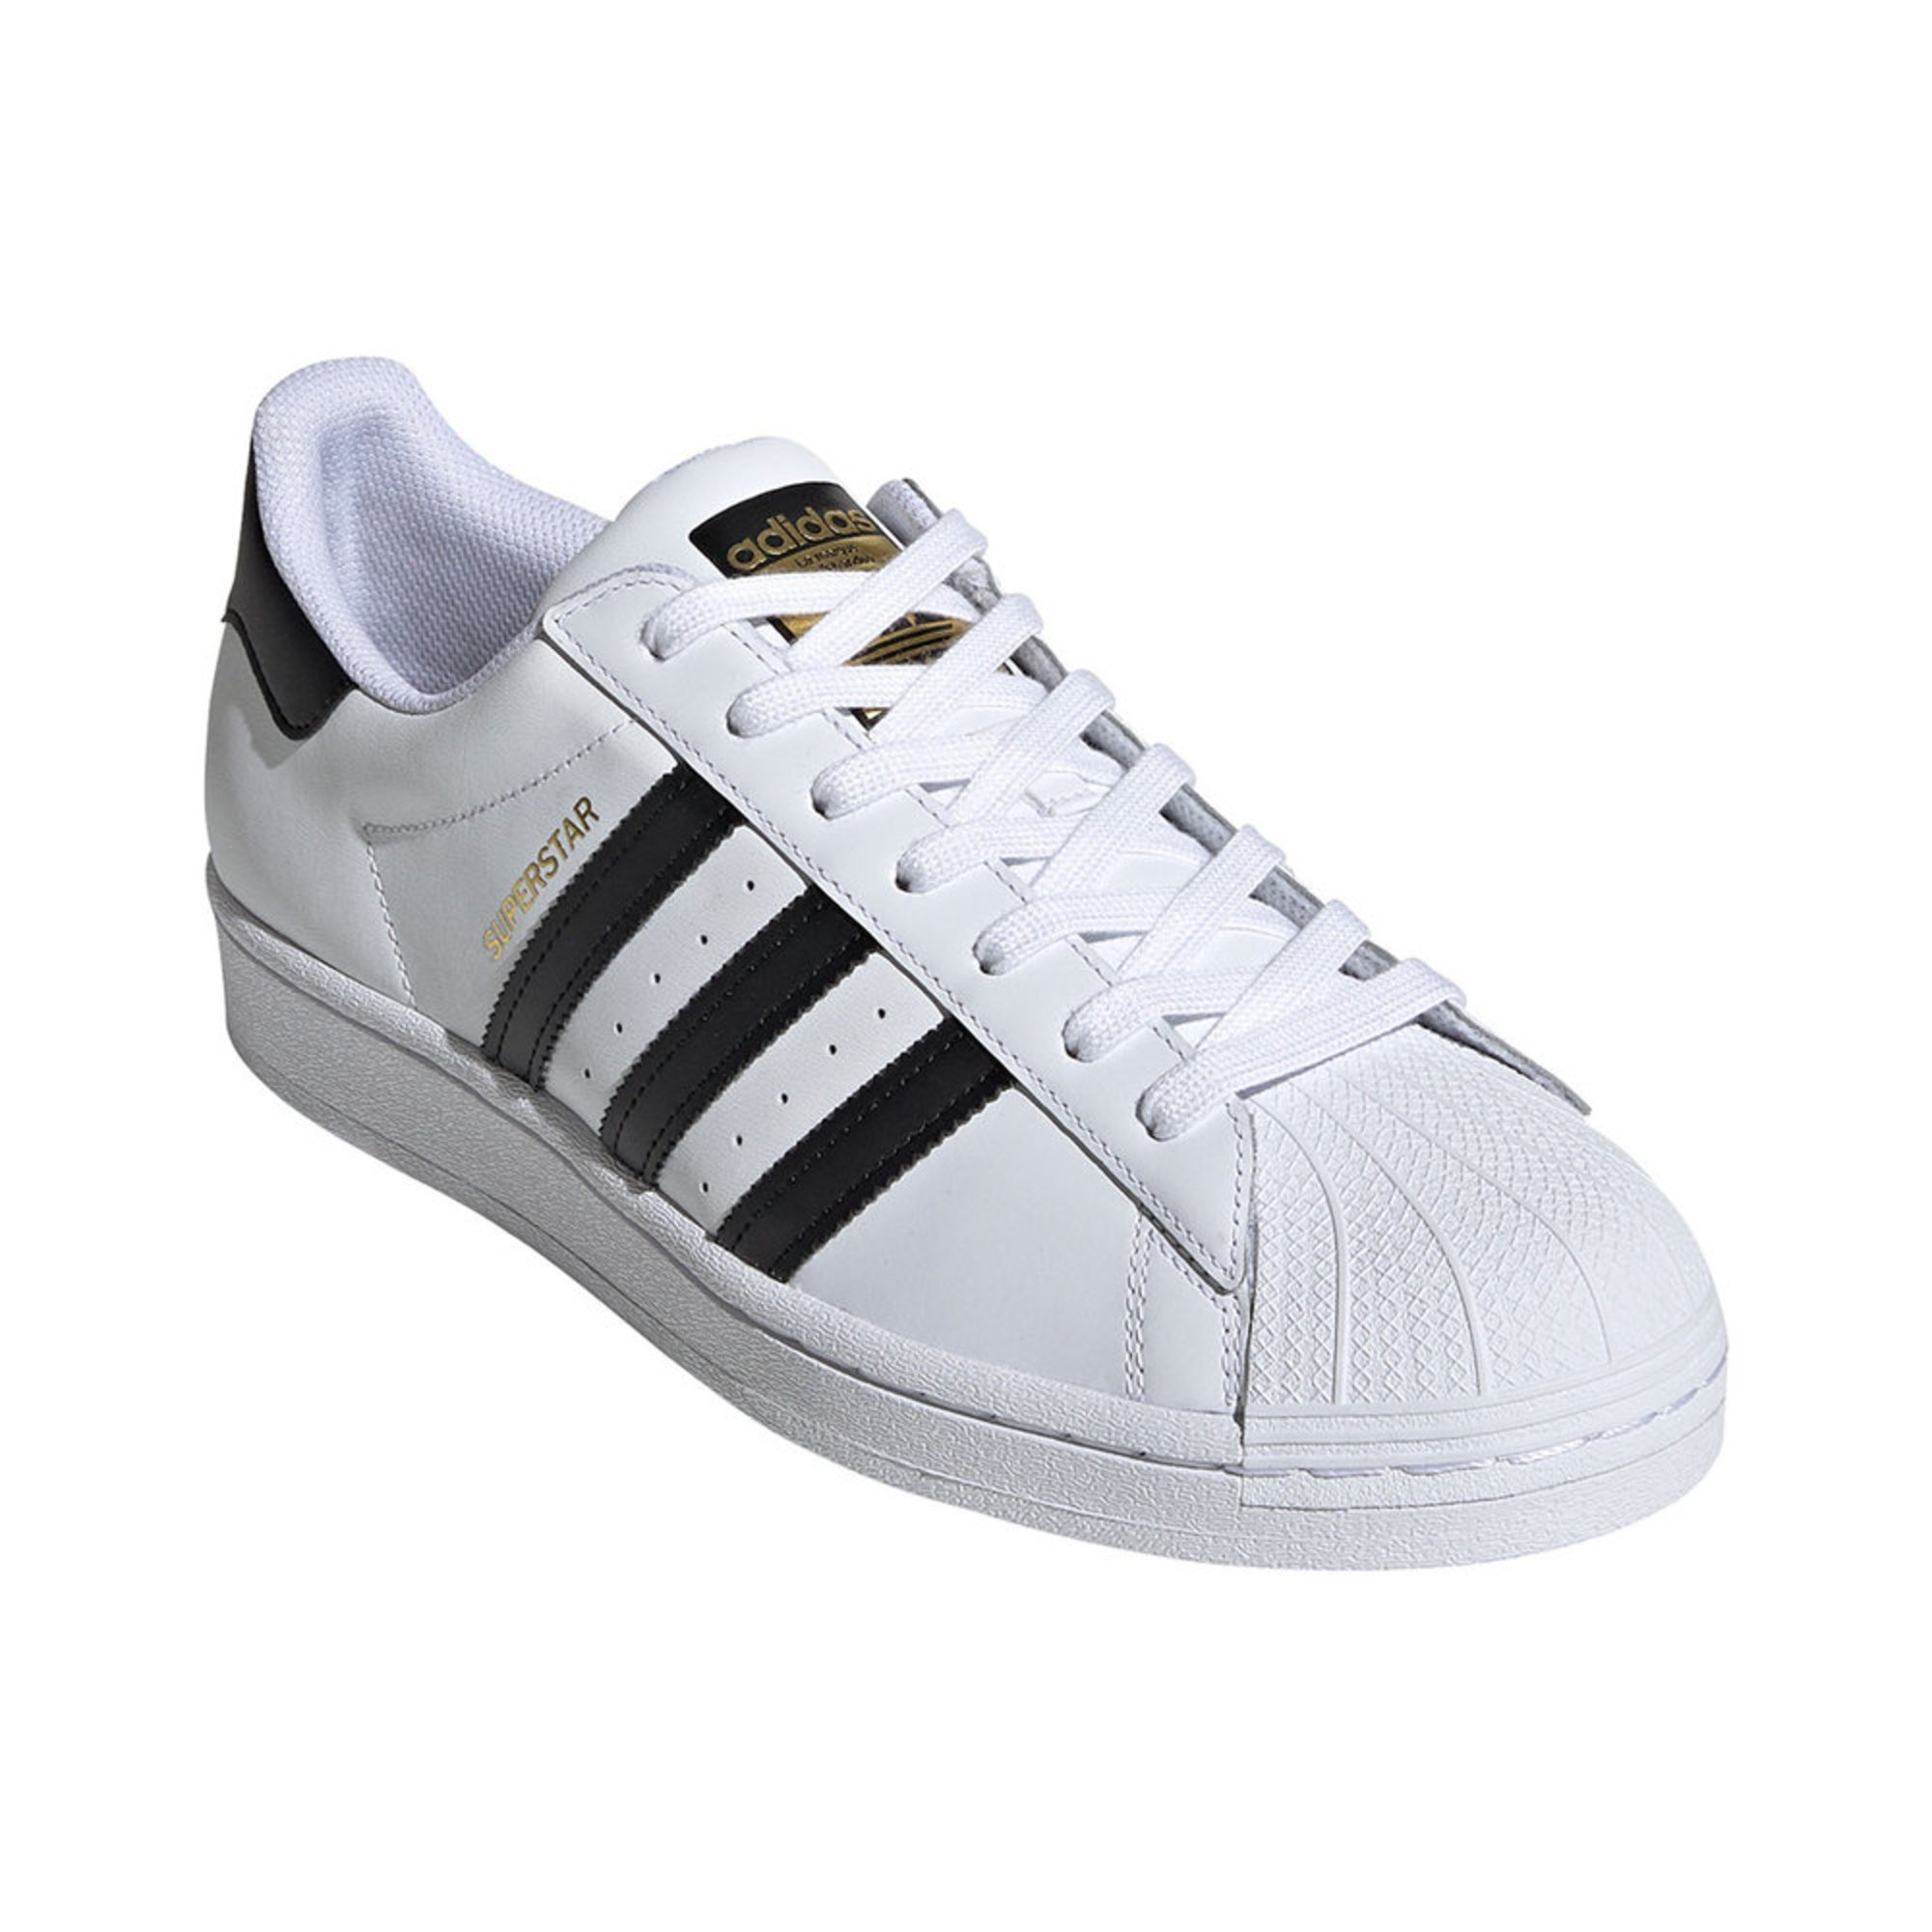 adidas superstar shoes navy